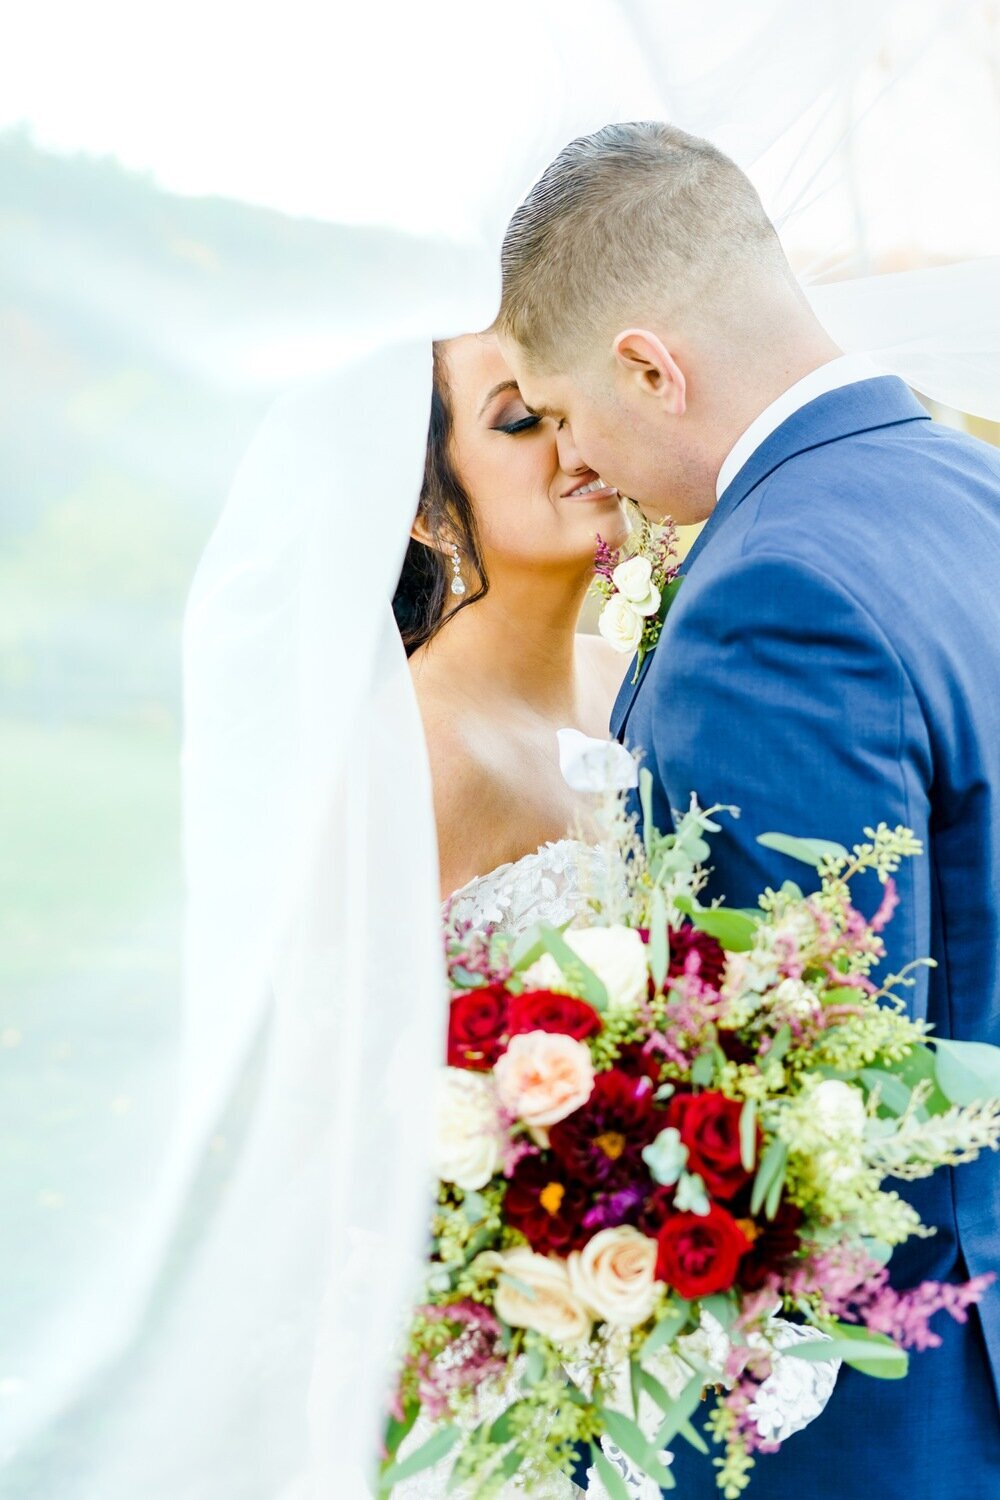 Bride and groom kissing with colorful bouquet